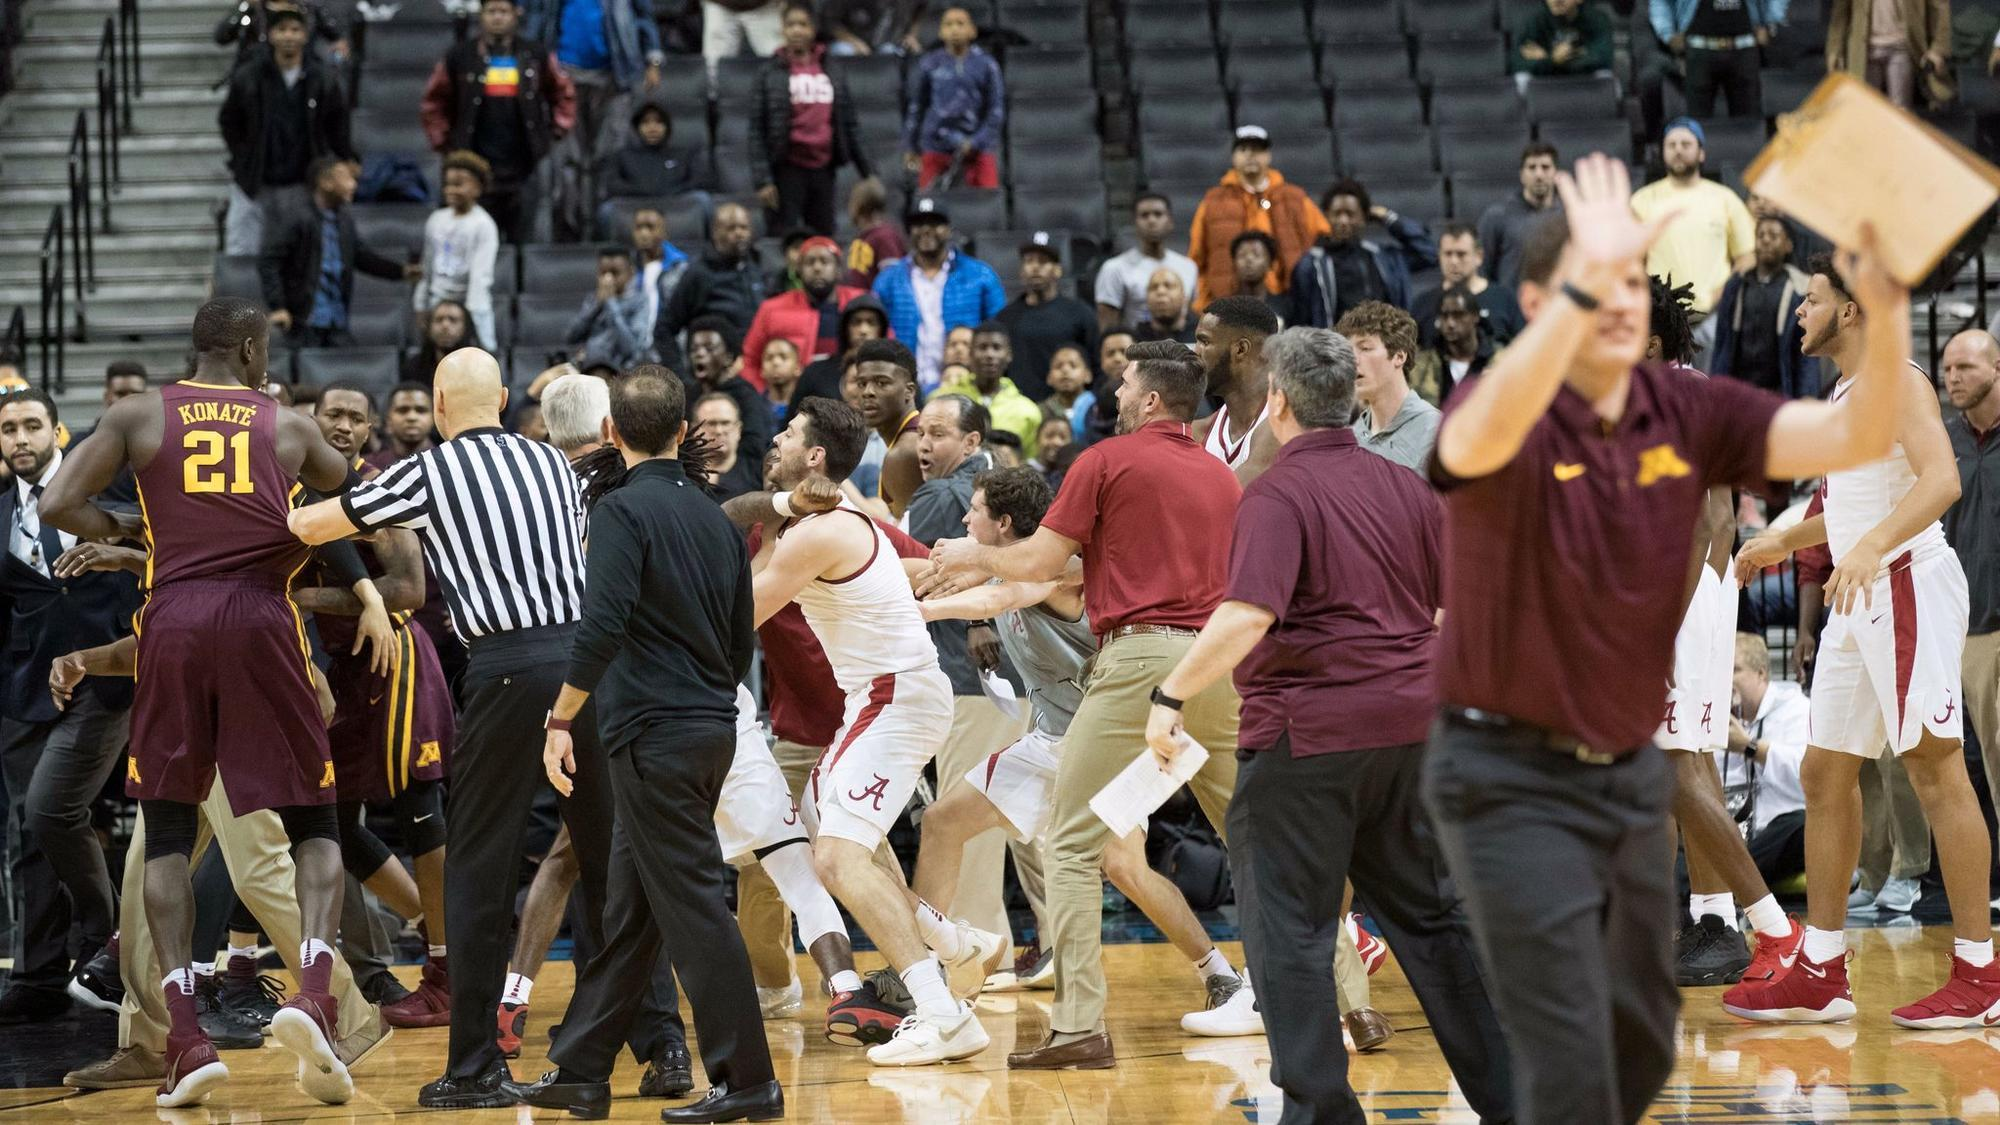 College basketball: Alabama finishes game with three players on the court after bench-clearing ...